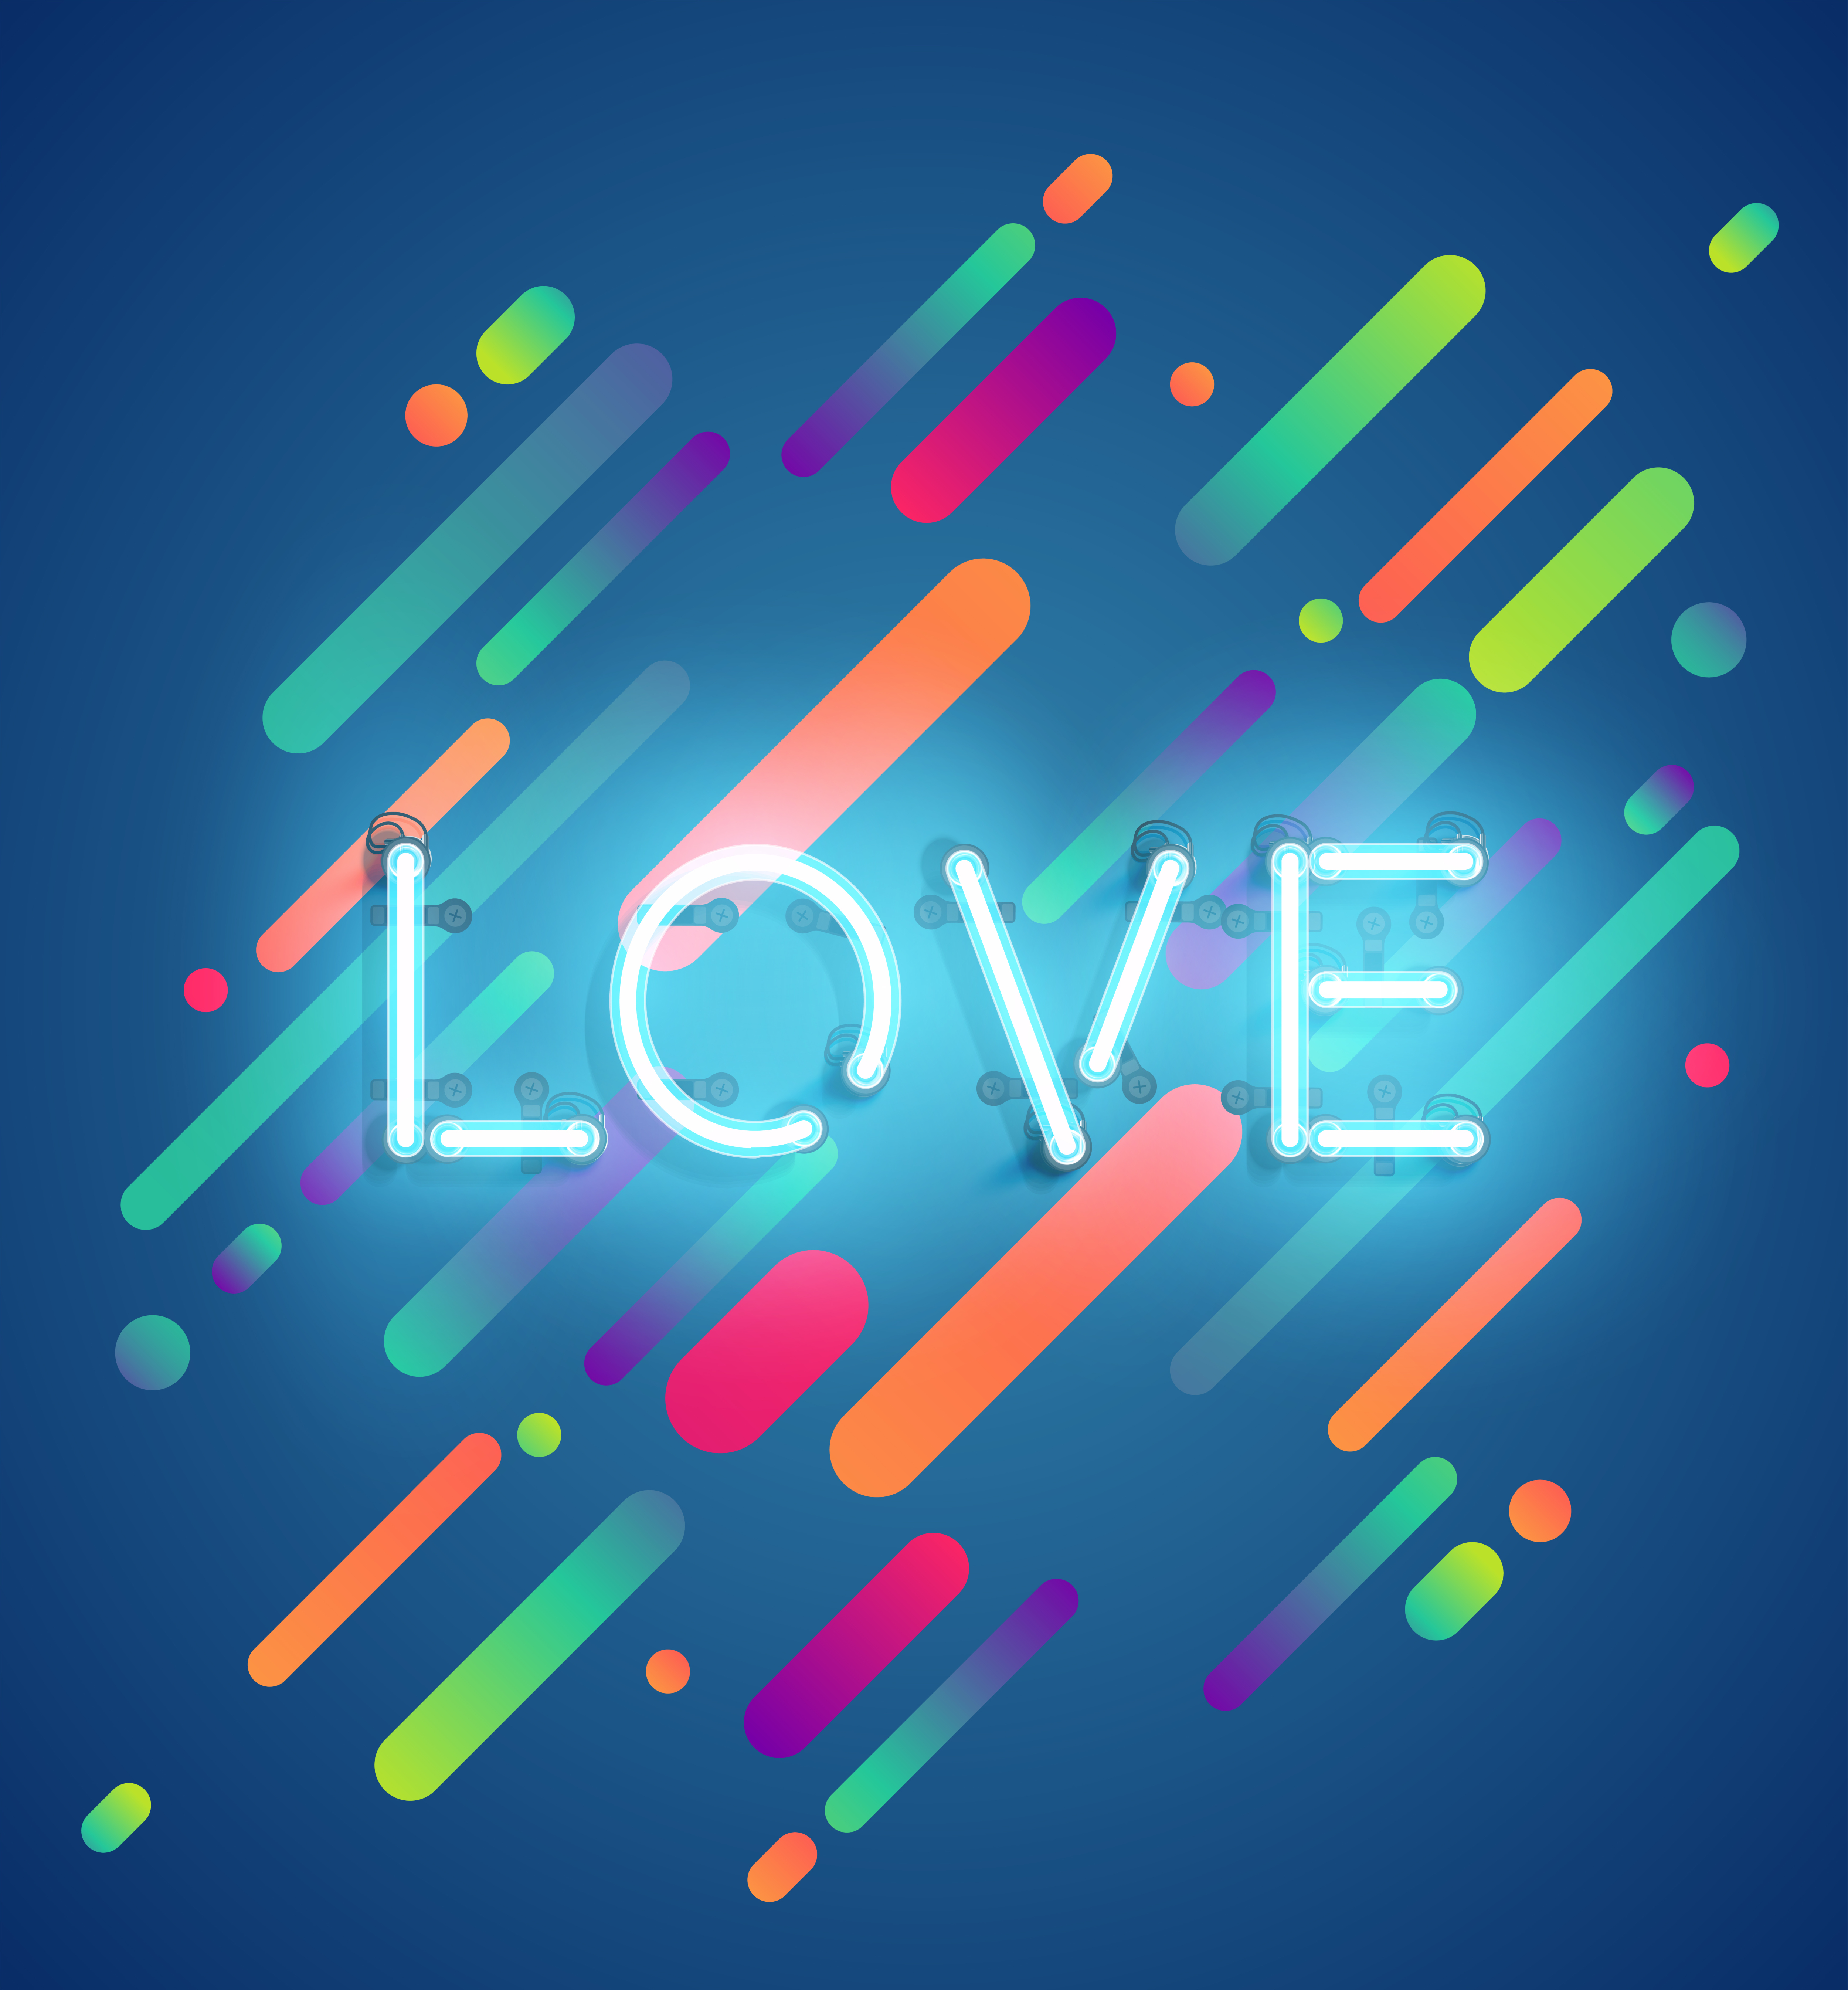 Neon word on colorful background vector illustration Download Free Vectors Clipart Graphics